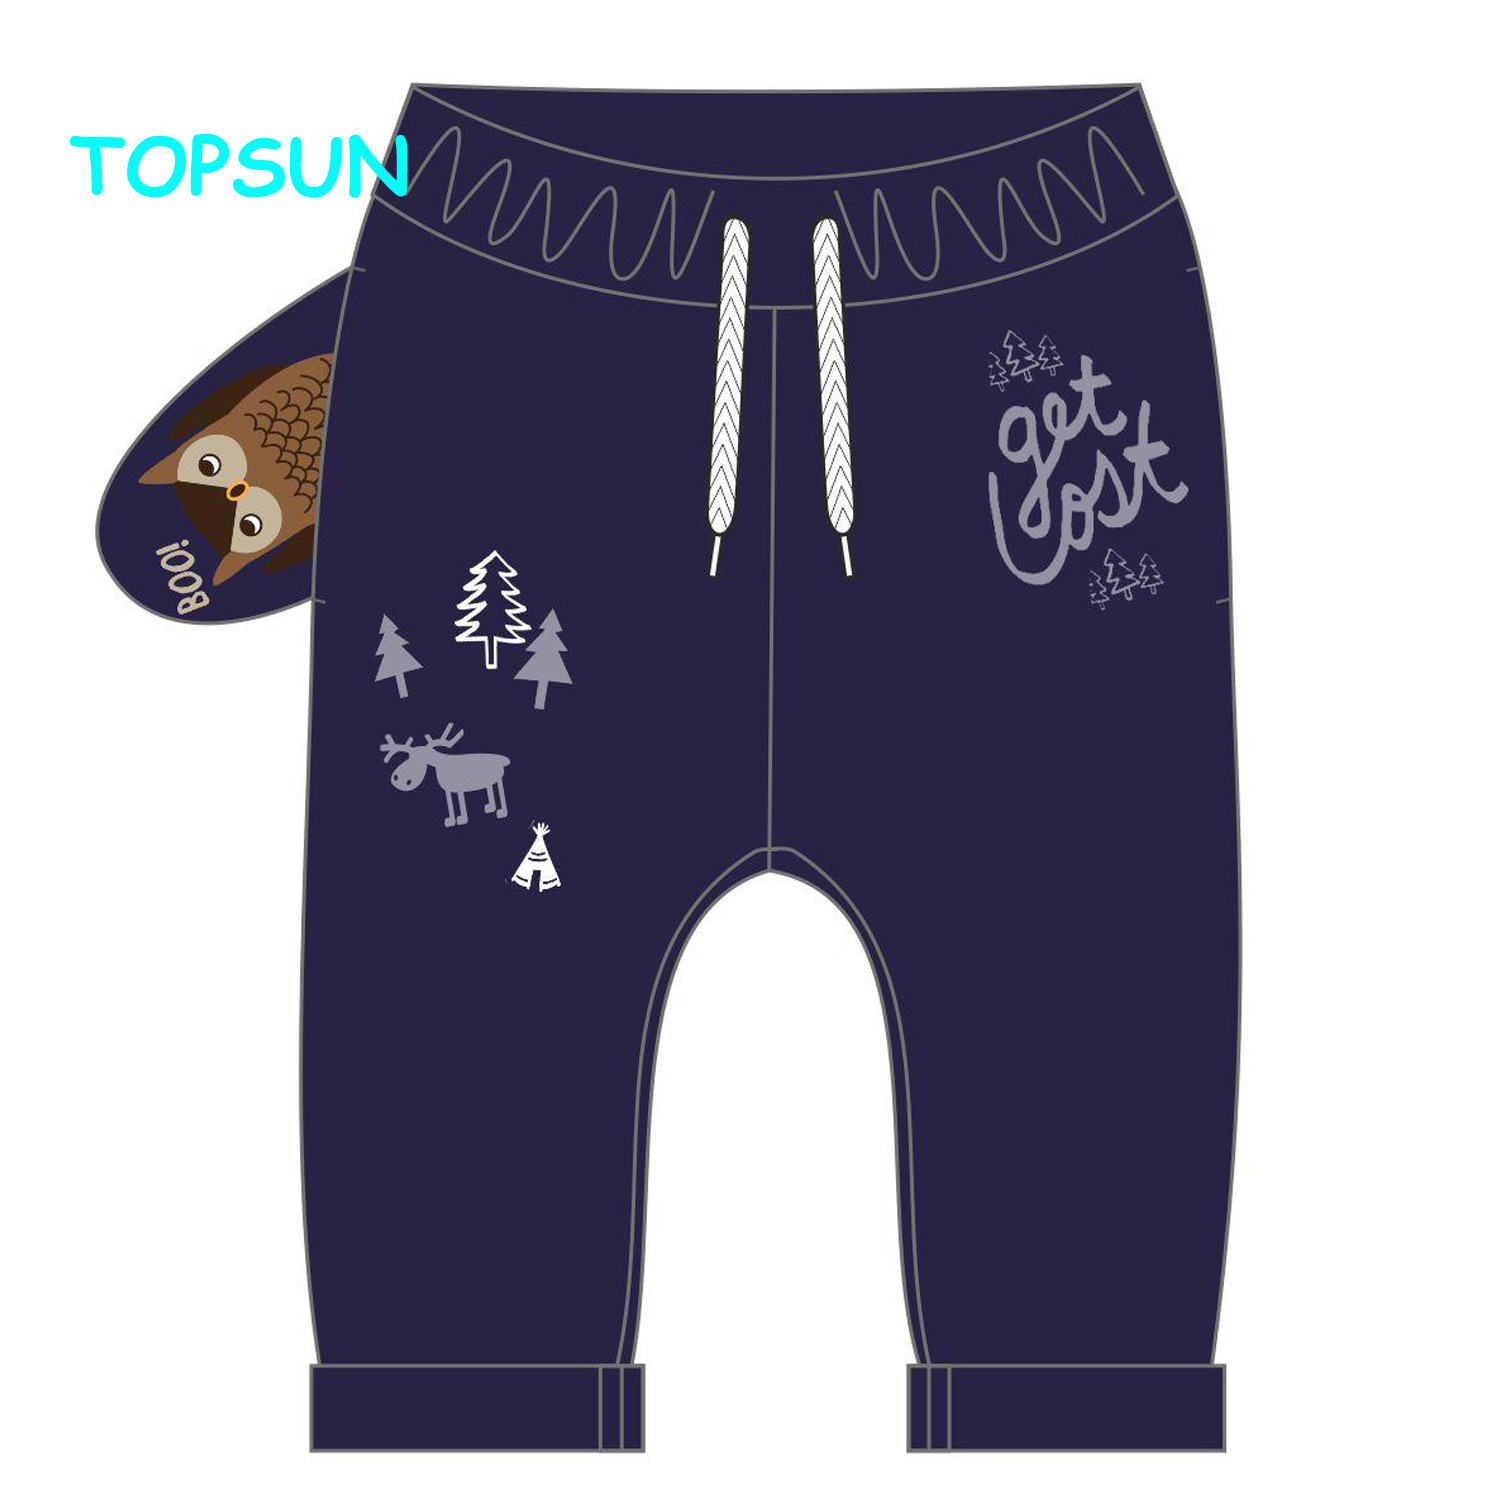 China Spring Autumn Baby Boys Pants Knit Fabric Cotton Leggings Solid Colors For Toddler 1 5 Years Old Photos Pictures Made In China Com